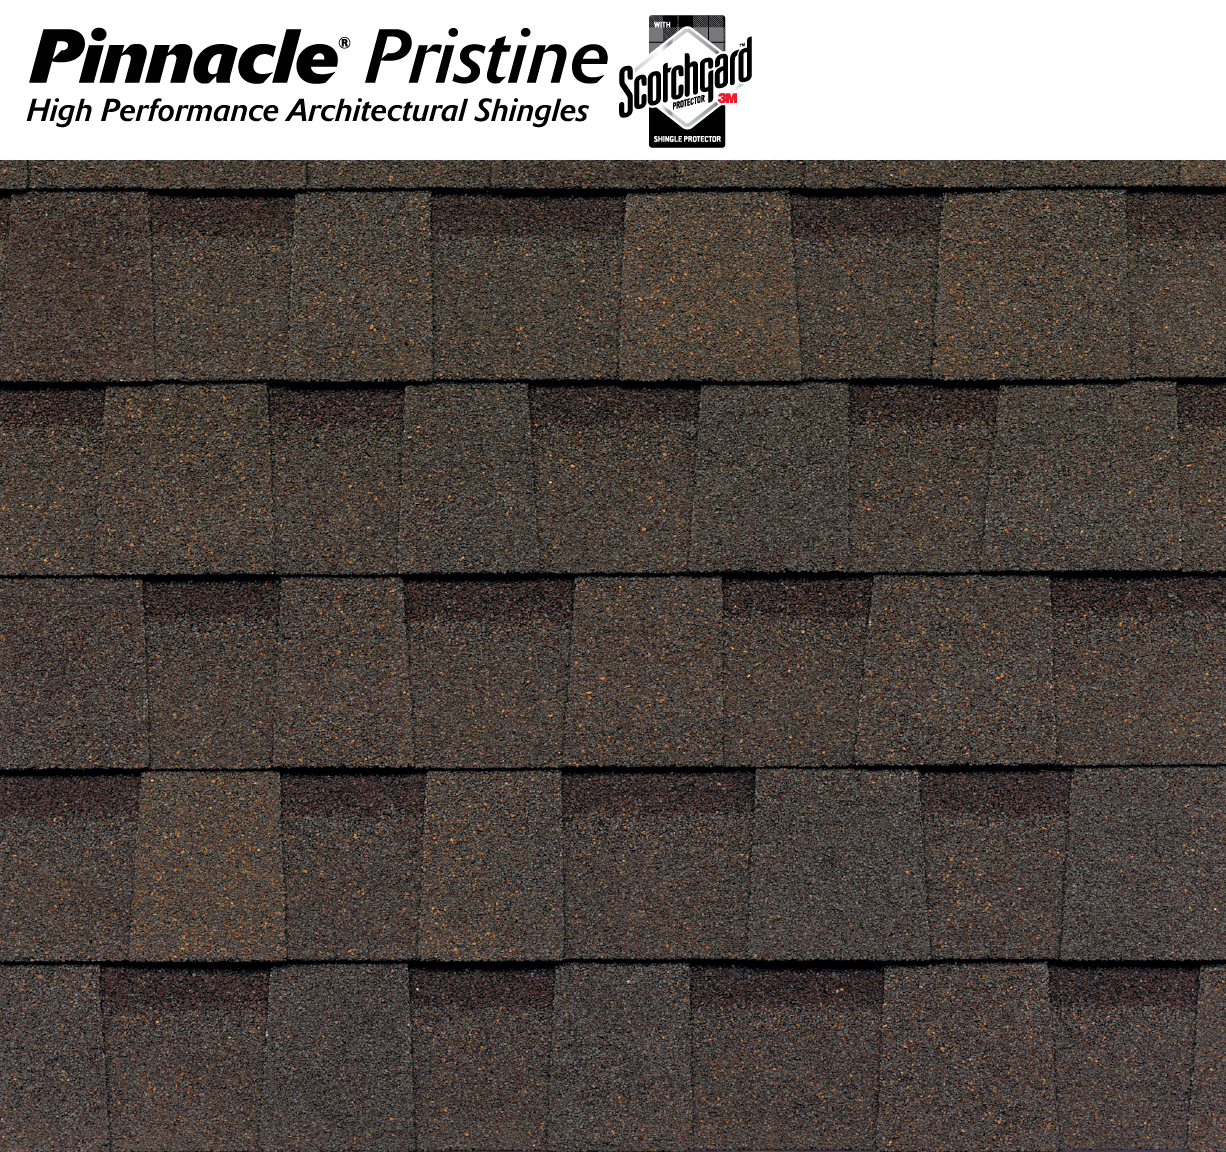 Pinnacle Scotchgard Pristine Heather